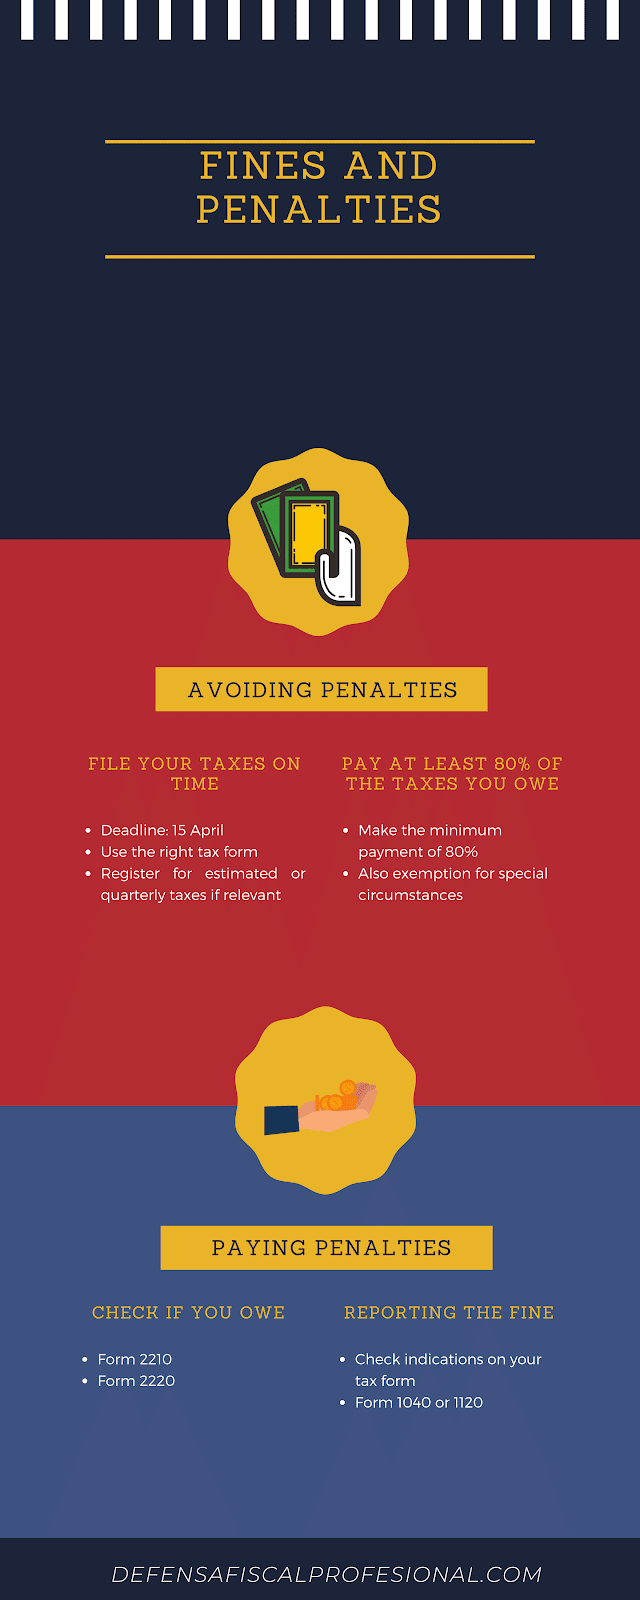 Infographic about tax penalties